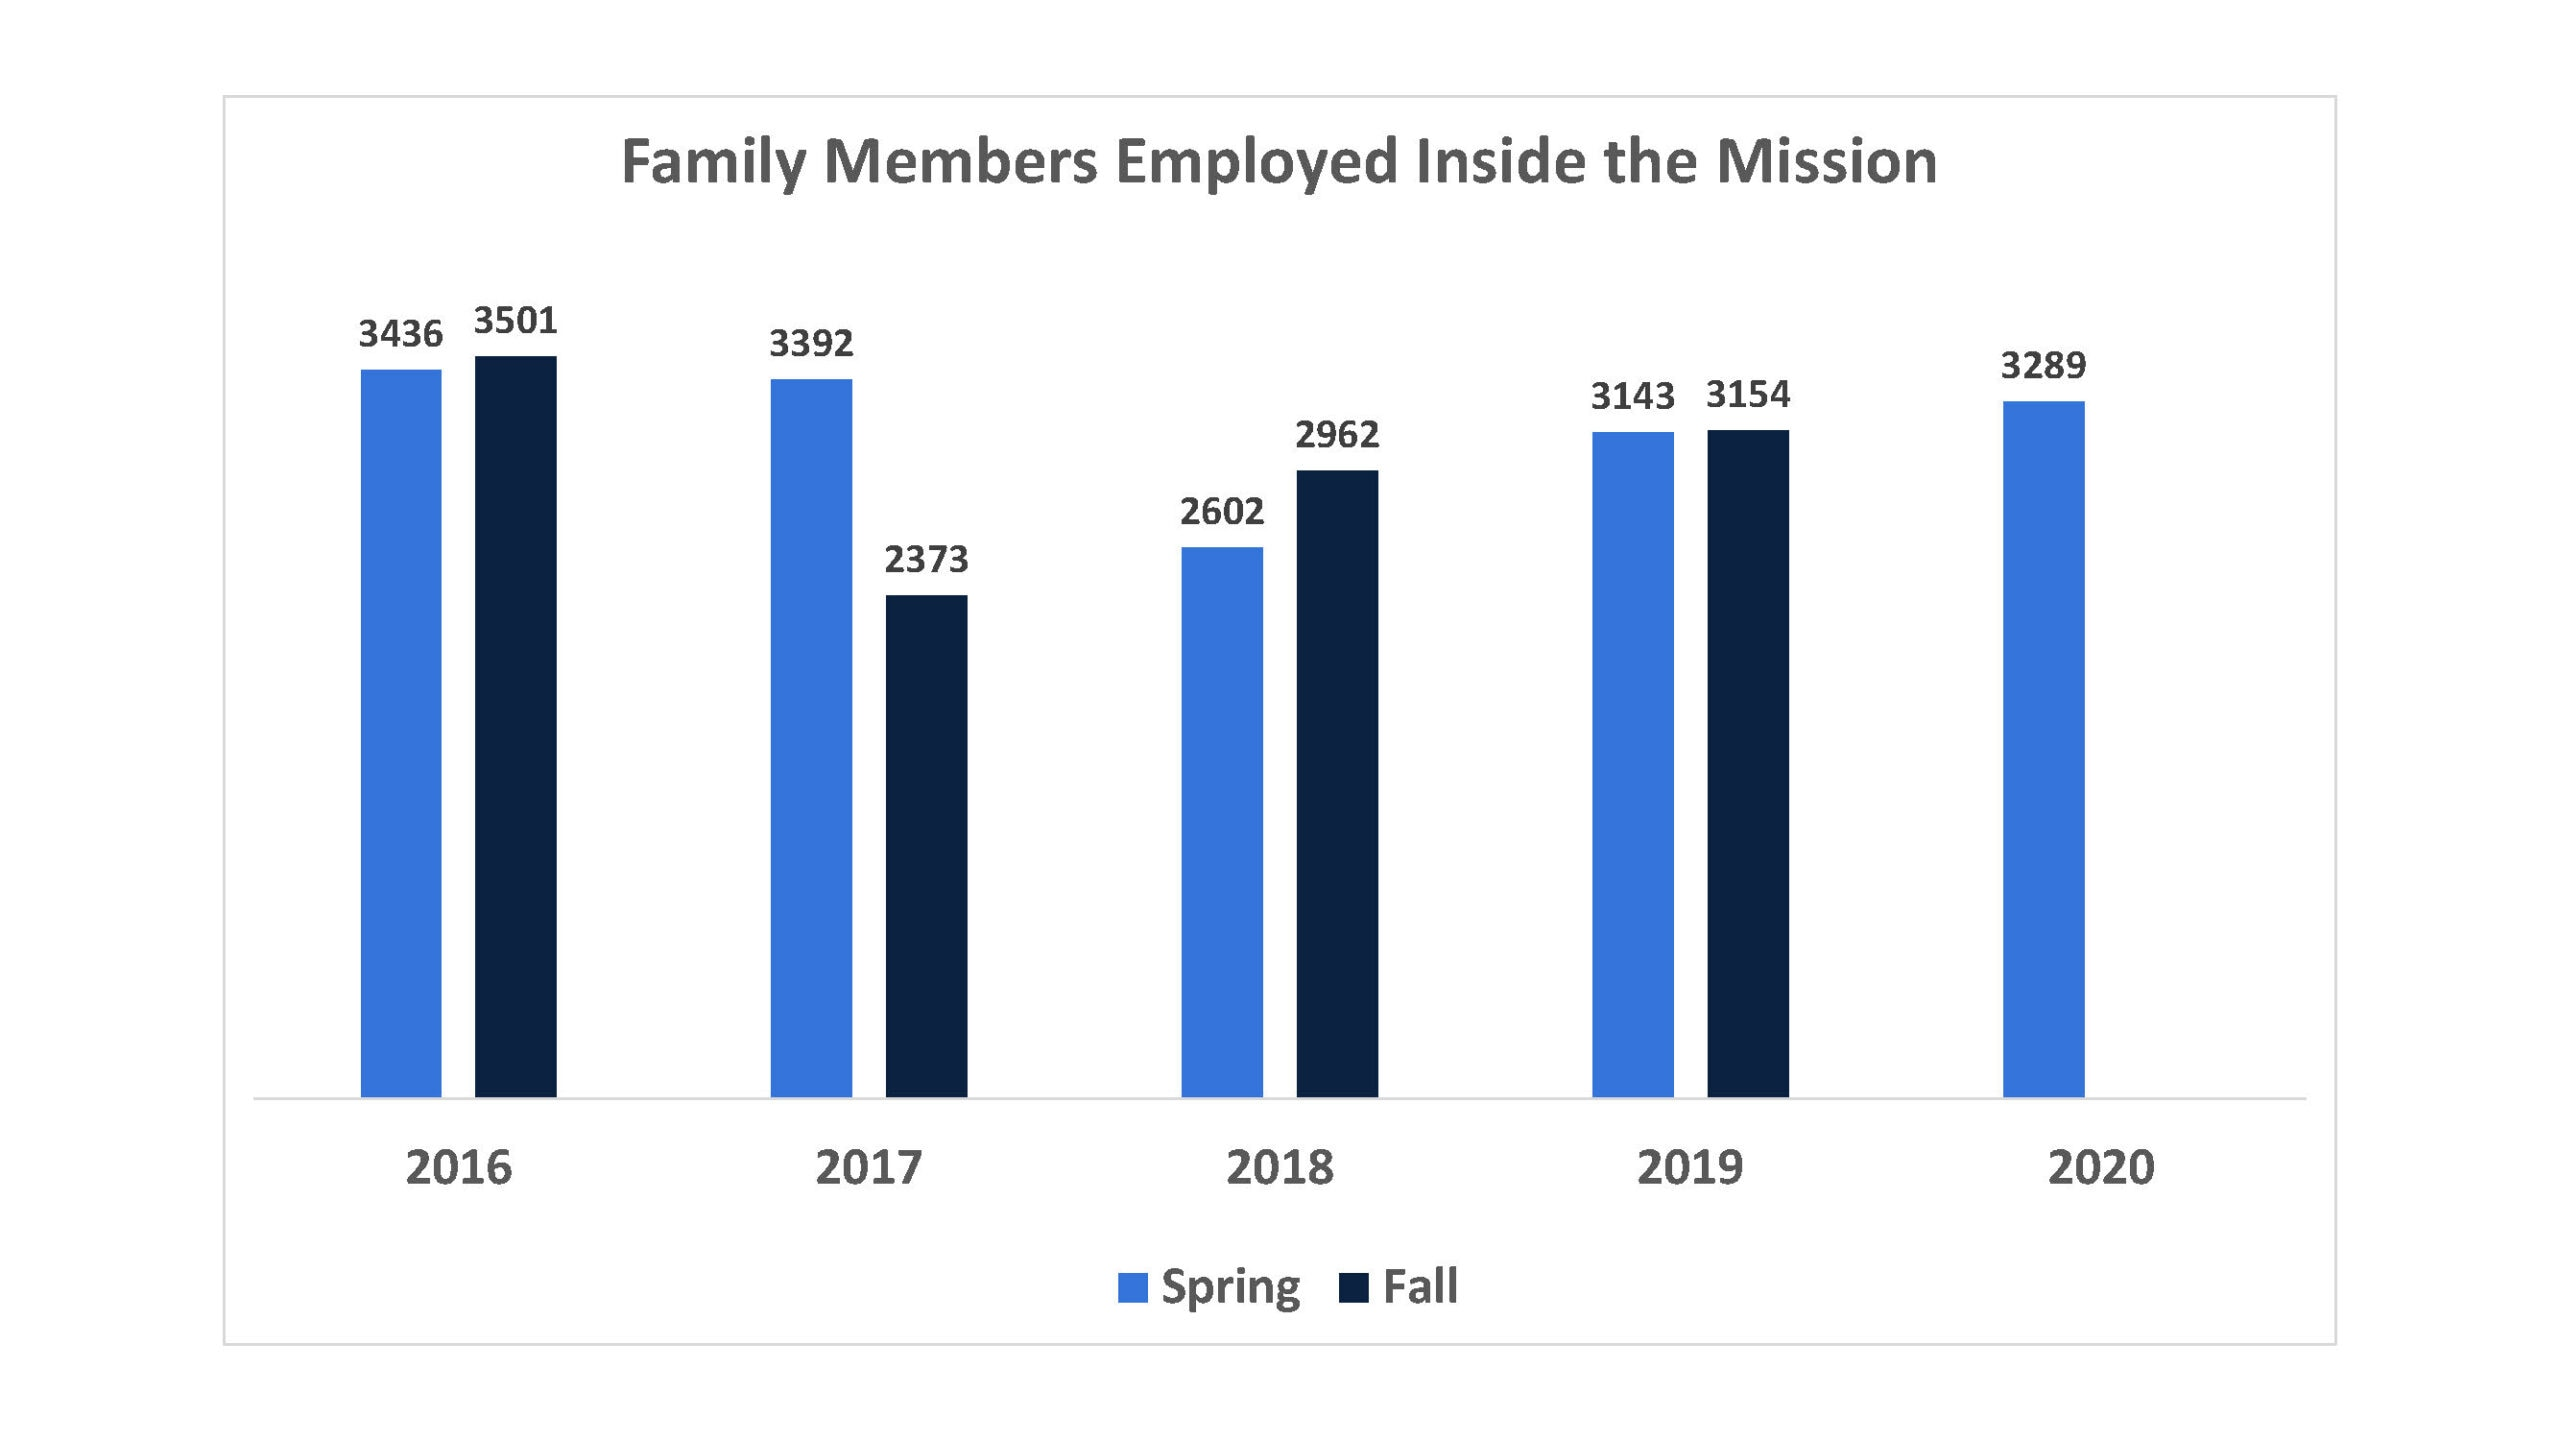 Family Members Employed Inside the Mission